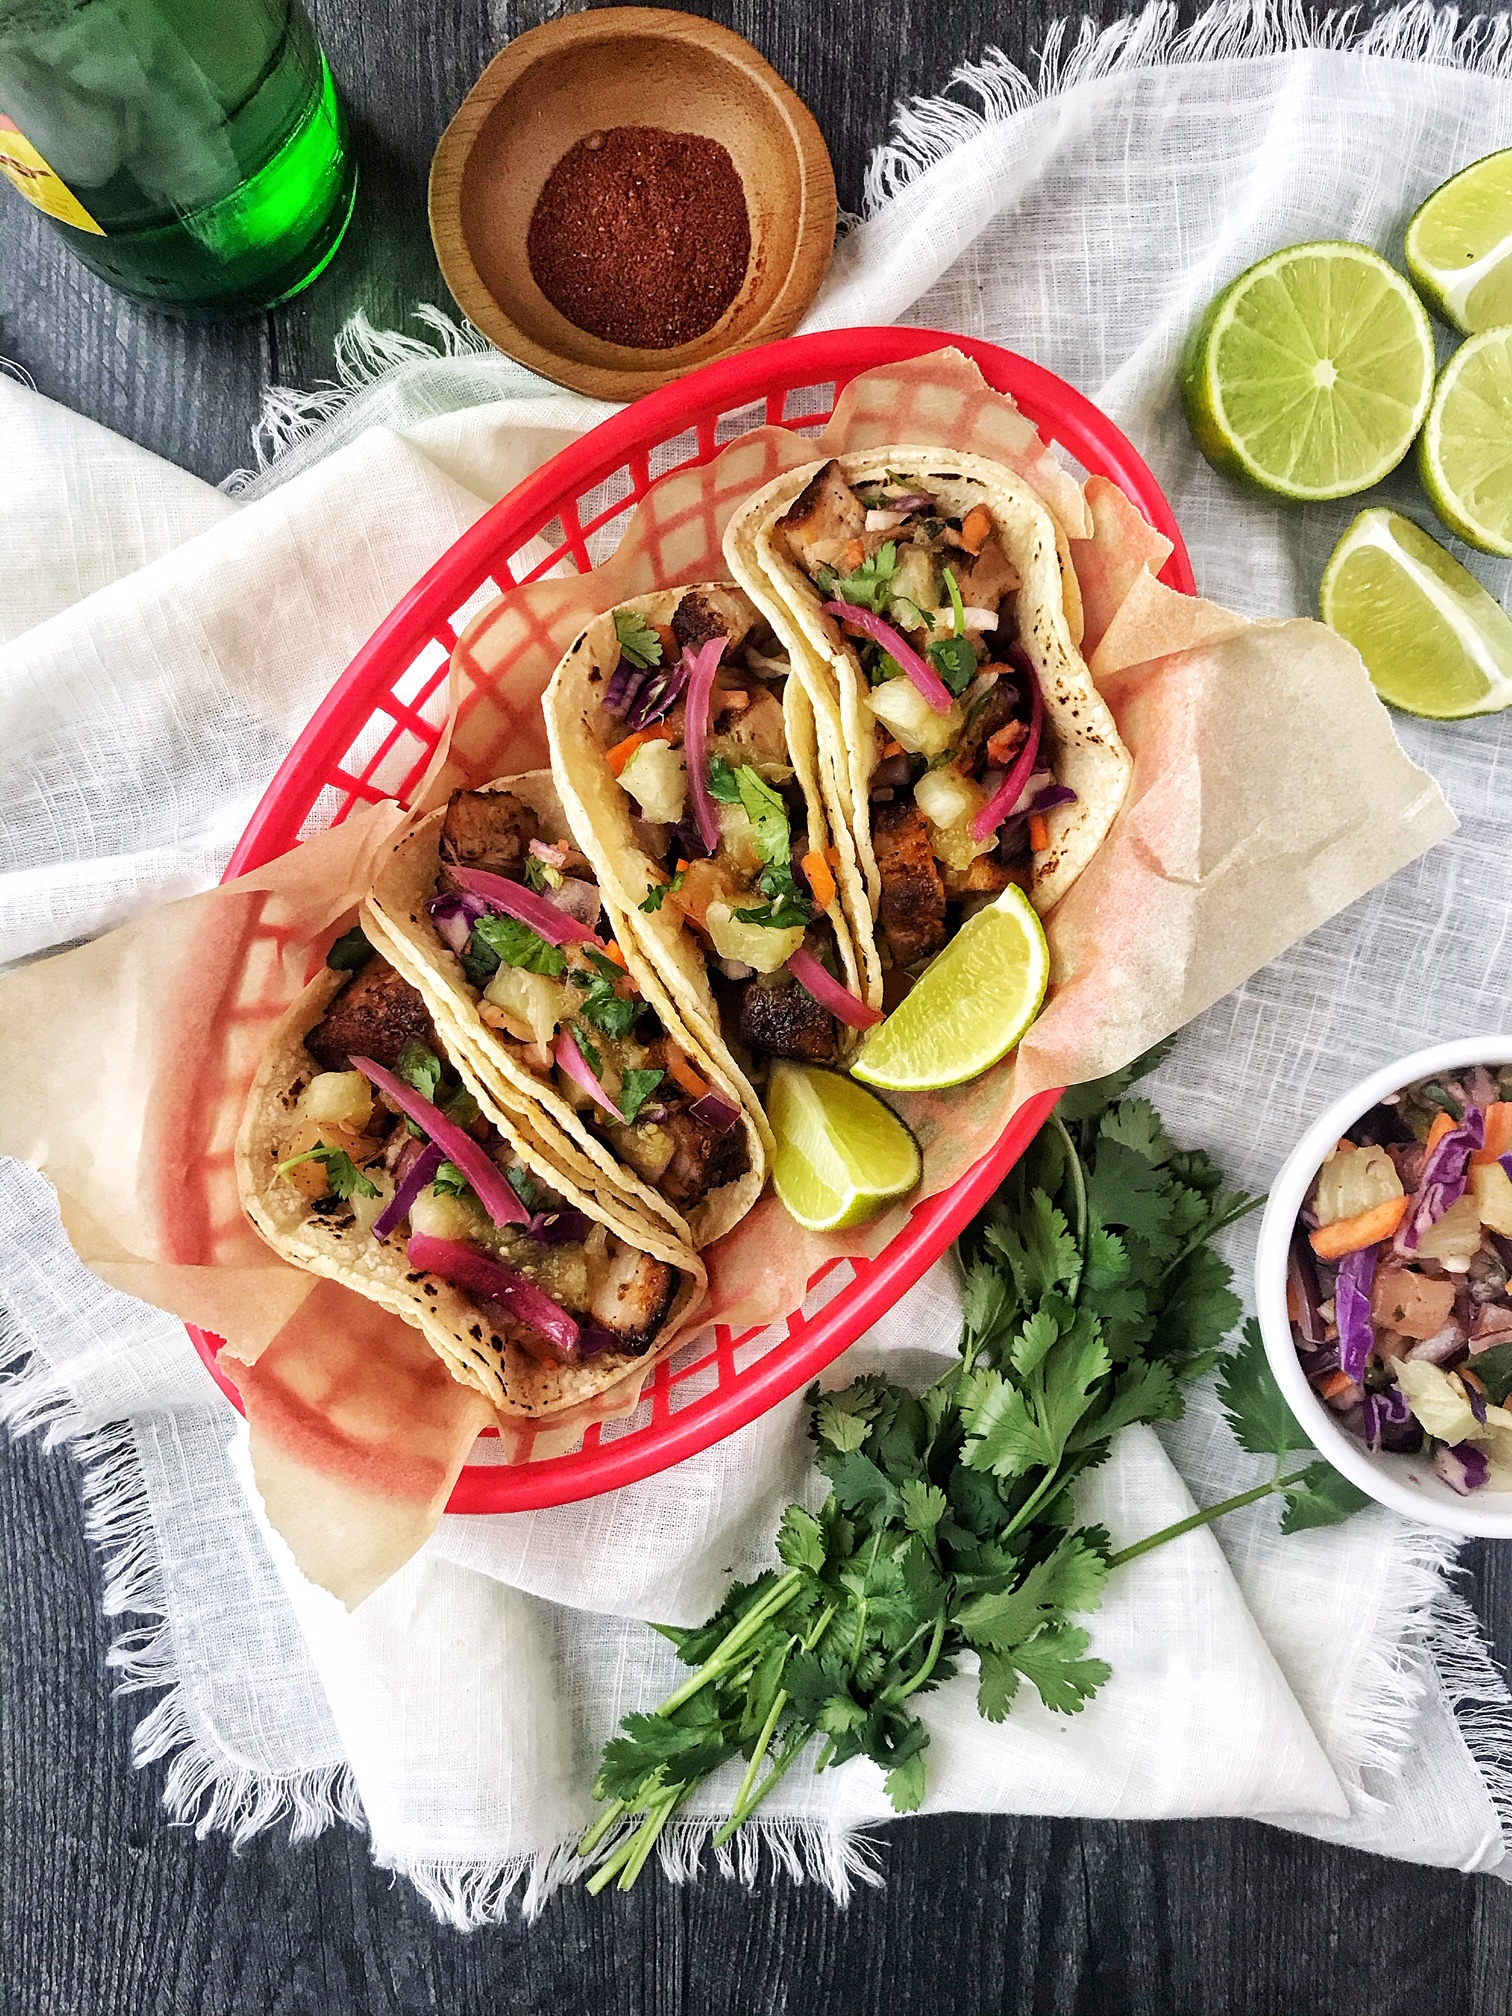 Pork belly tacos with pineapple slaw and red onion. Limes, chili powder, cilantro, and drink on the side.